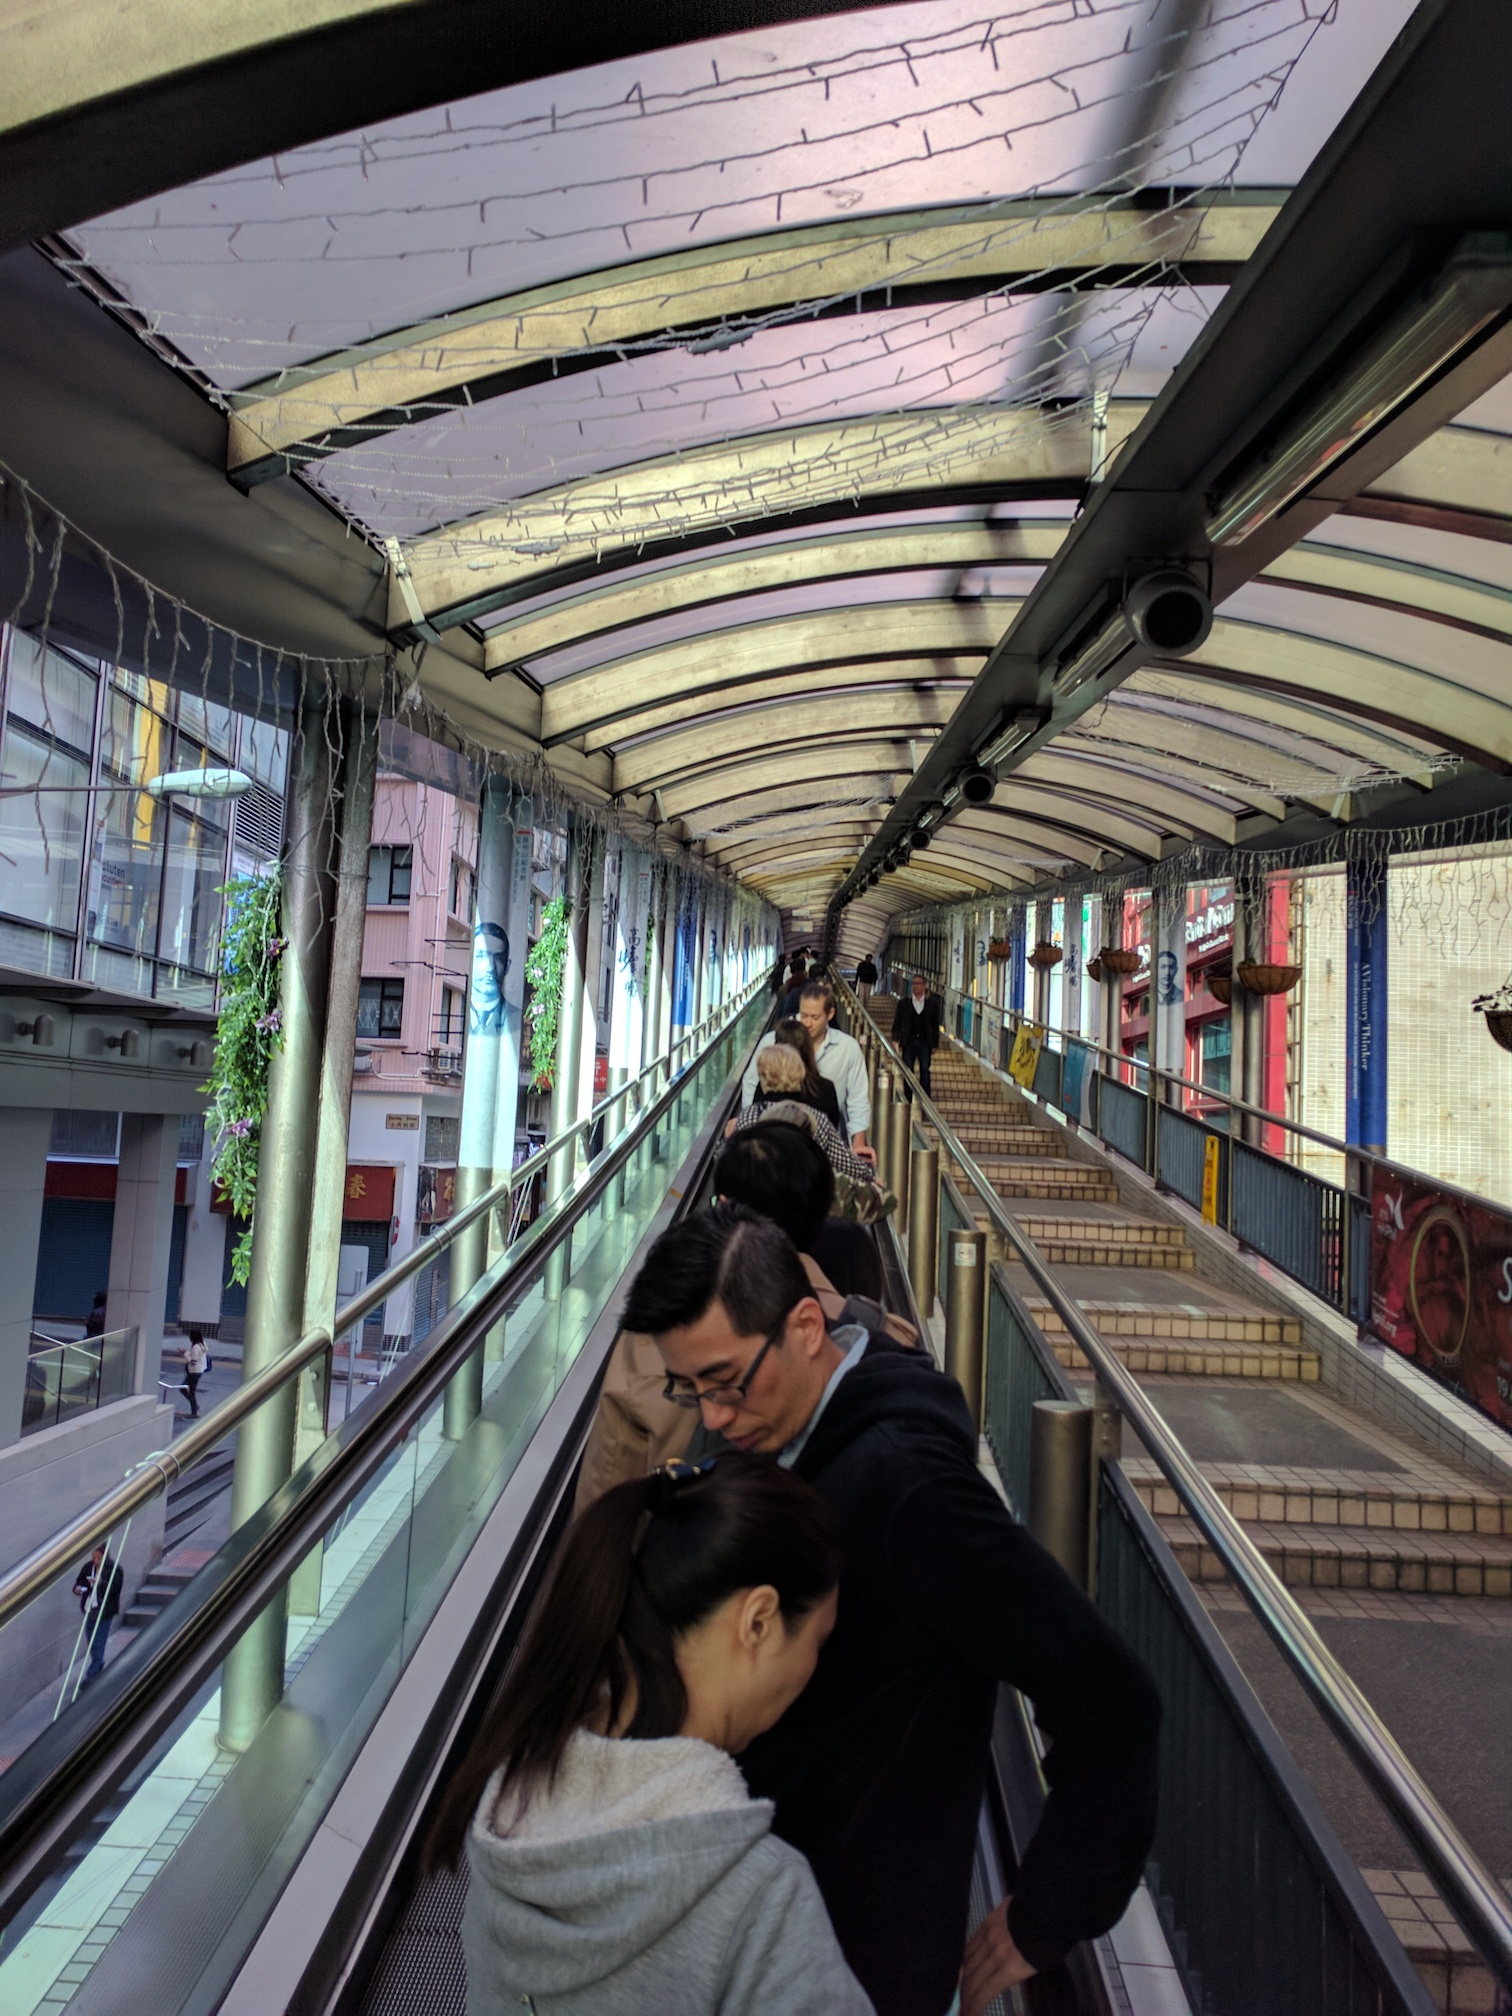 Hong Kong drives on the left, walks on the left, but stands on the right on escalators